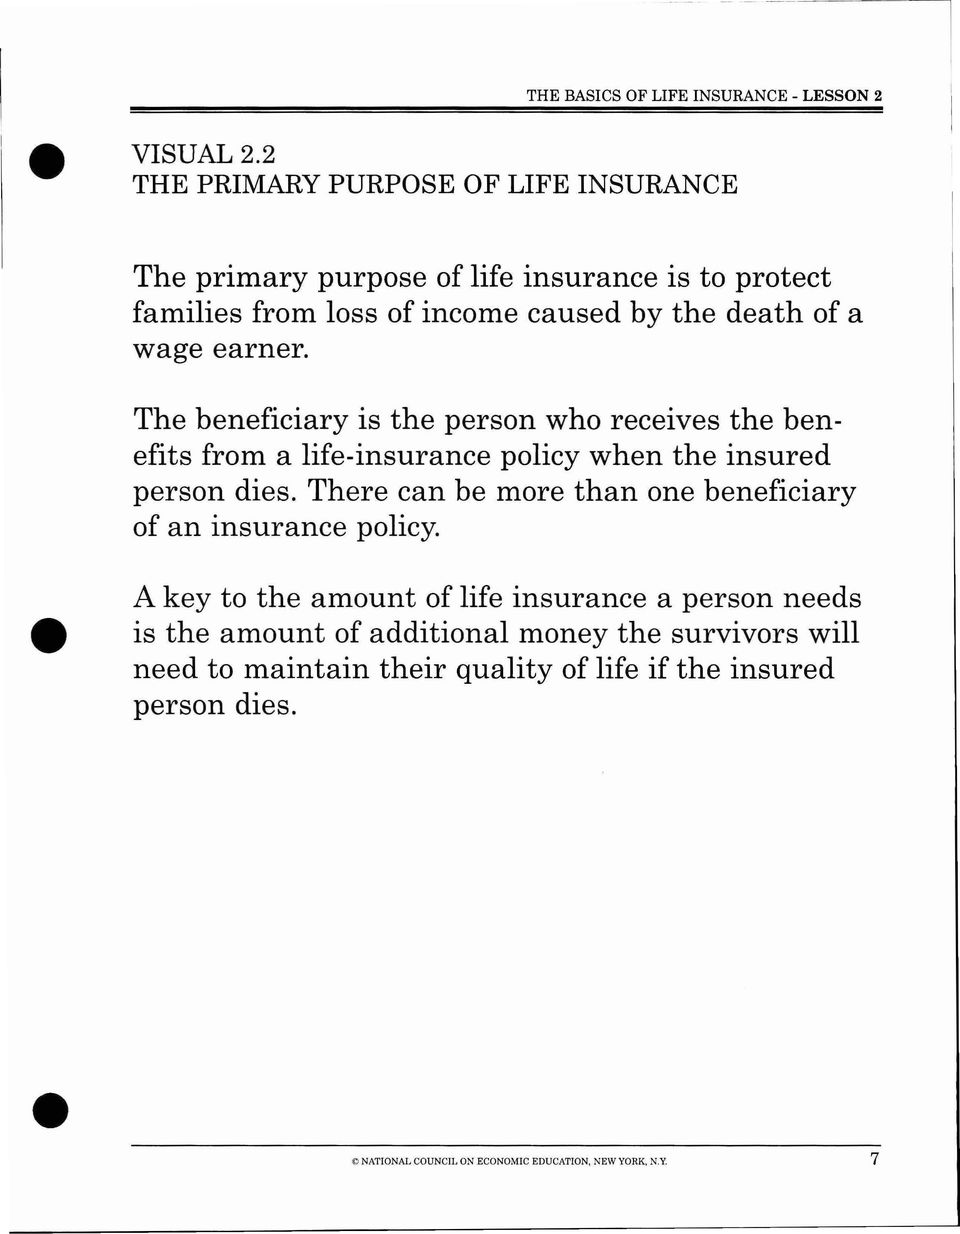 a wage earner. The beneficiary is the person who receives the benefits from a life-insurance policy when the insured person dies.